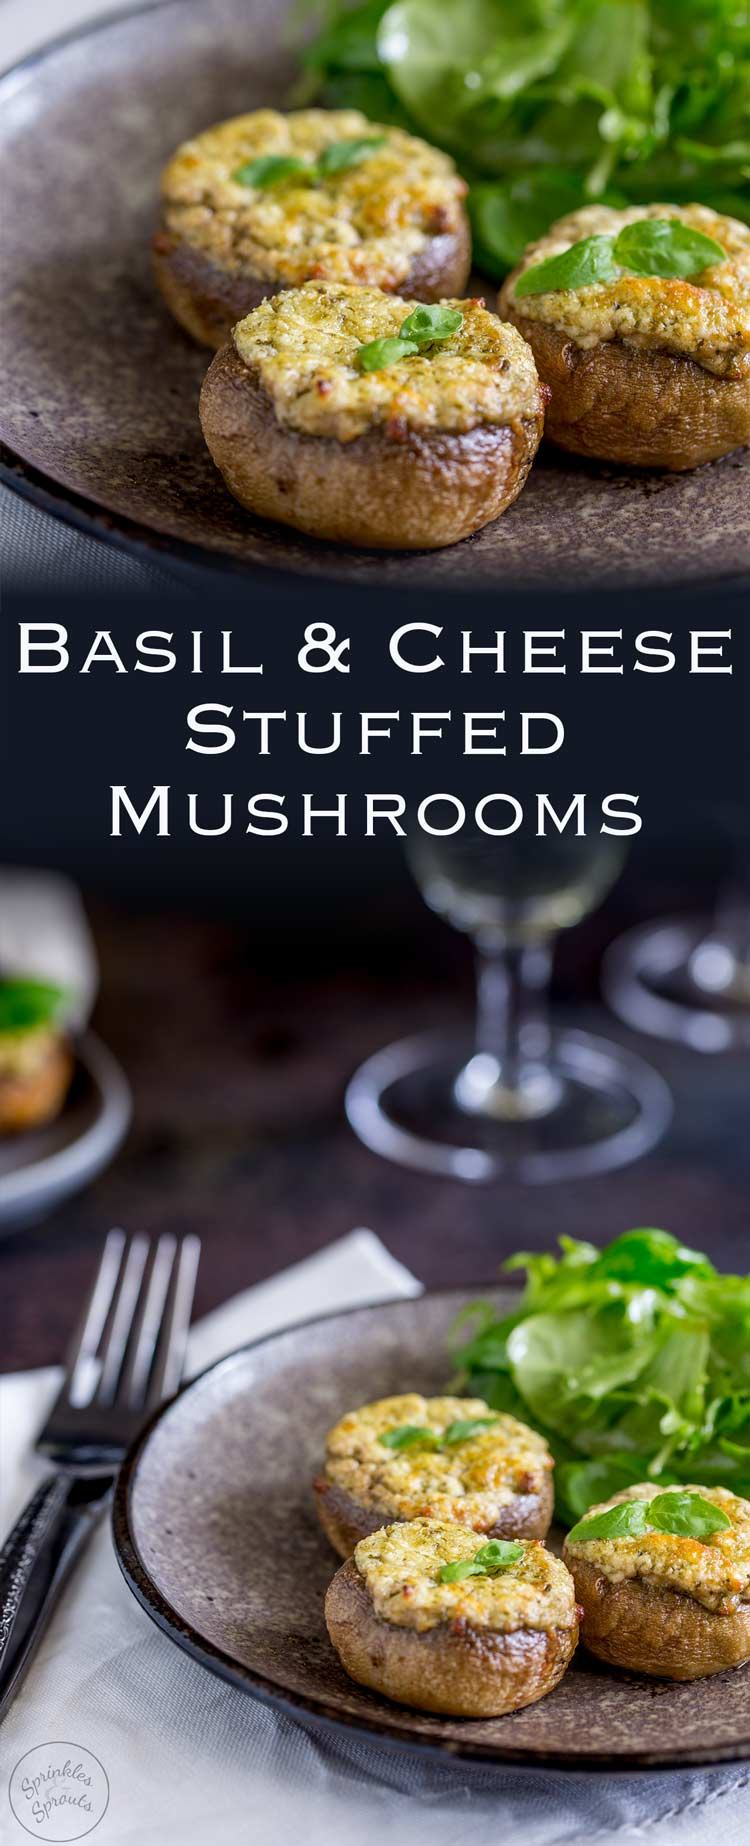 Basil and Cheese Stuffed mushrooms. Everybody loves stuffed mushrooms! And these basil and cheese stuffed mushrooms are divine. They are simple to make and make a great dinner party appetizer. Recipe from Sprinkles and Sprouts | Delicious food for easy entertaining.